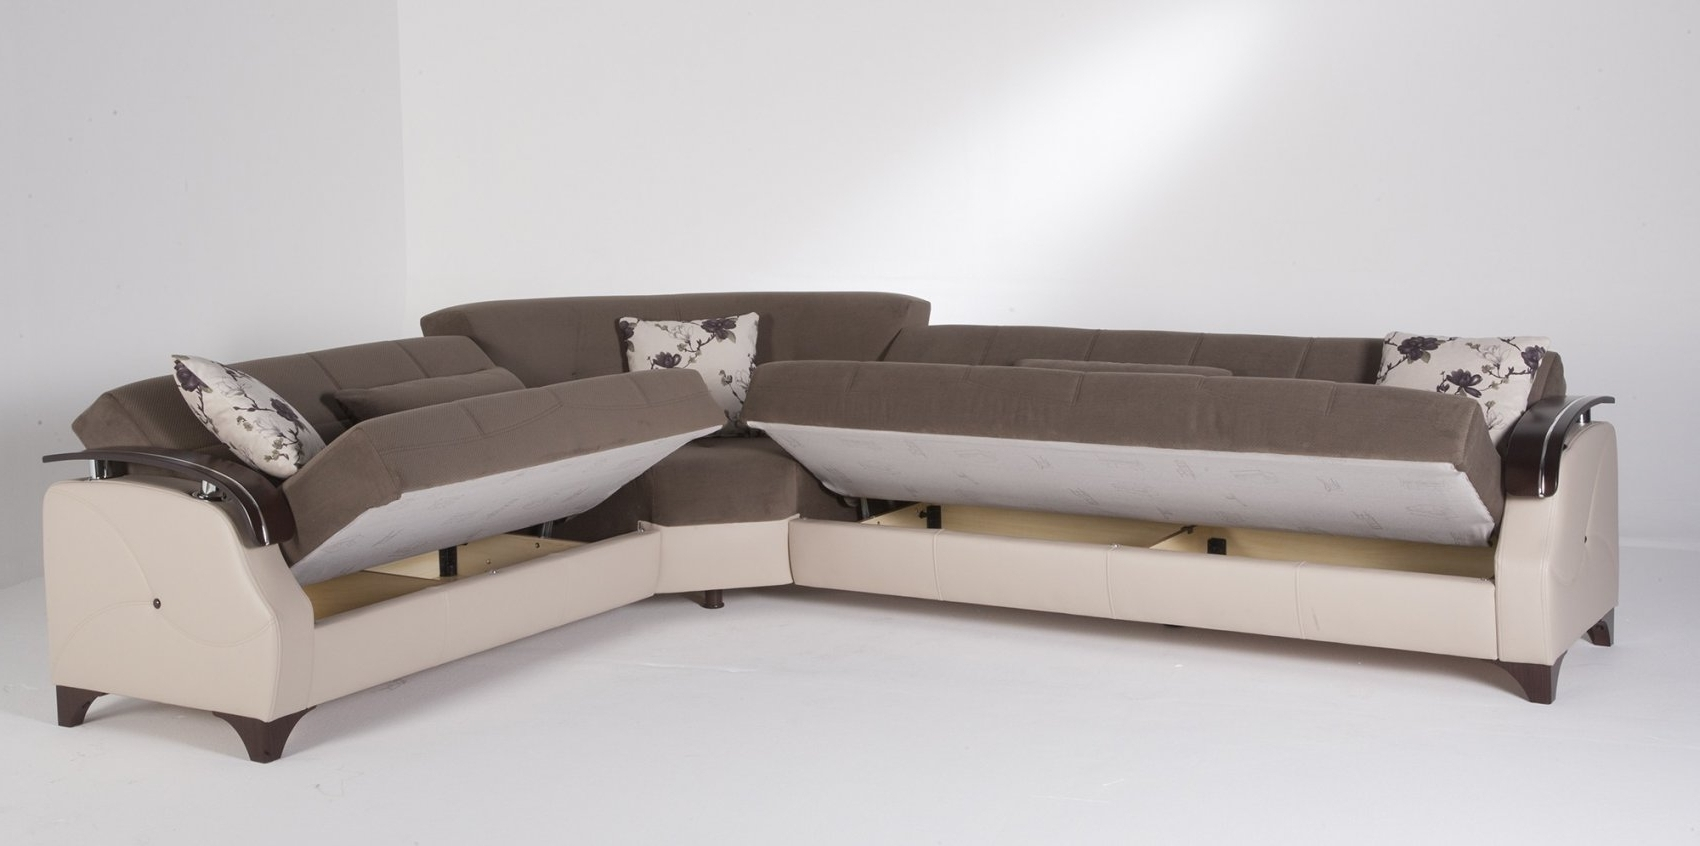 Leather Sectional Sleeper Sofa With Chaise 24 For Classic High For Inside Trendy Chaise Sectional Sleepers (View 9 of 15)